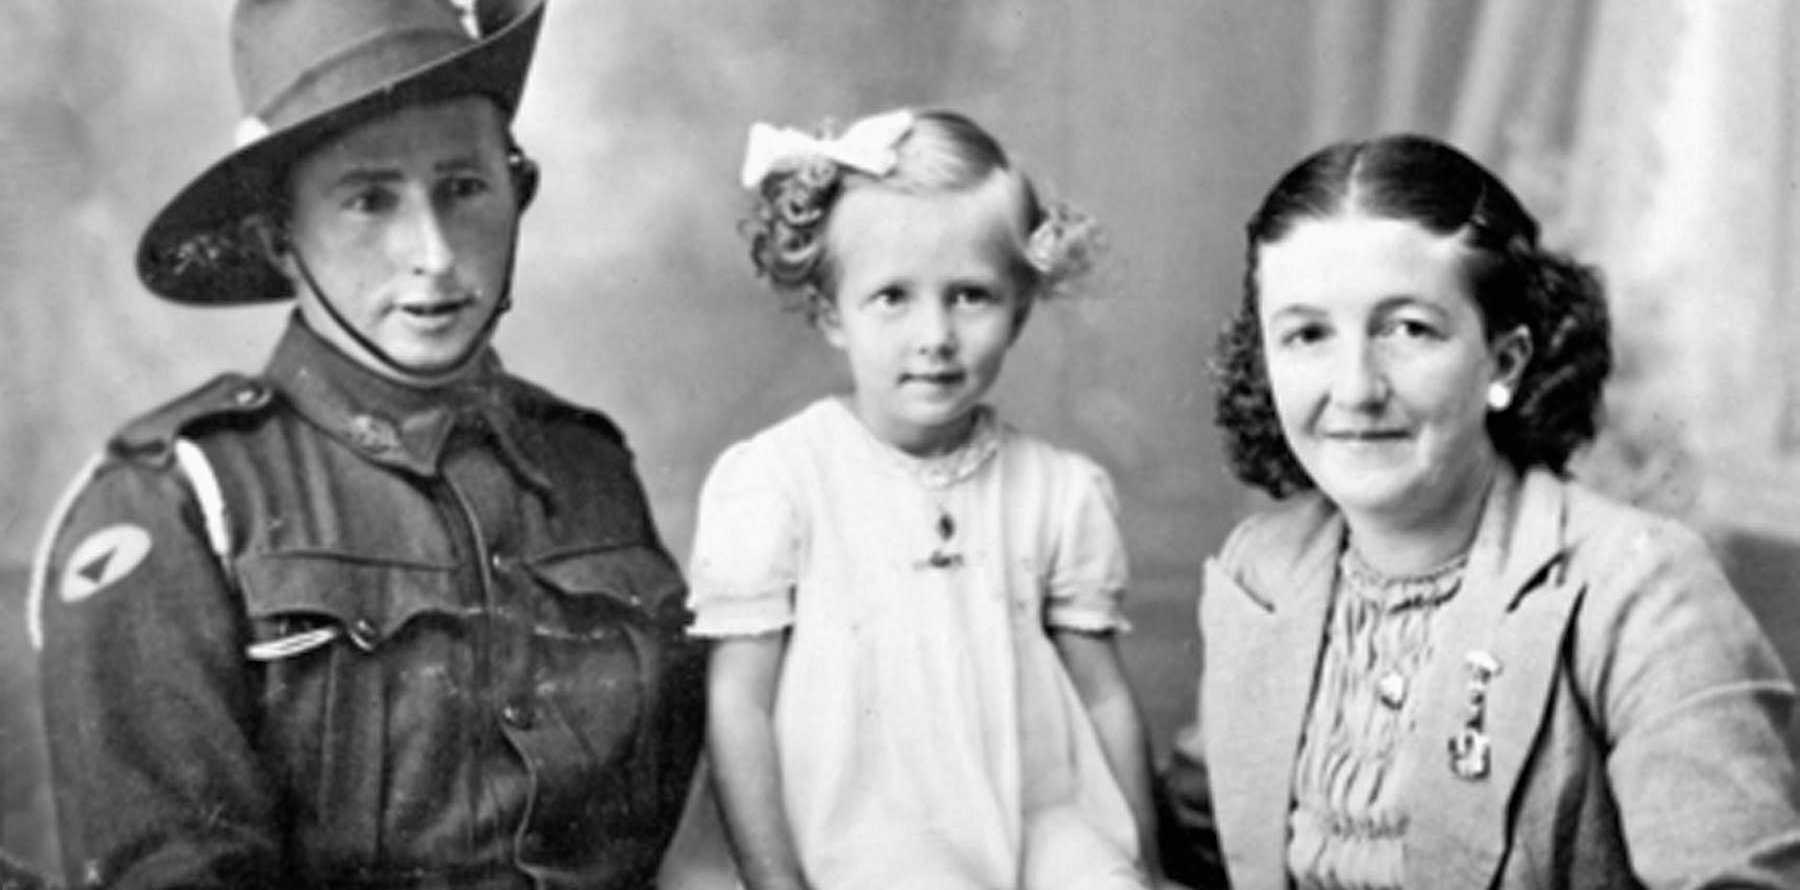 SCHUHMACHER SIBLINGS: Pte John H.C. Schuhmacher with sister Kathleen Hackett and niece Lesley Hackett.